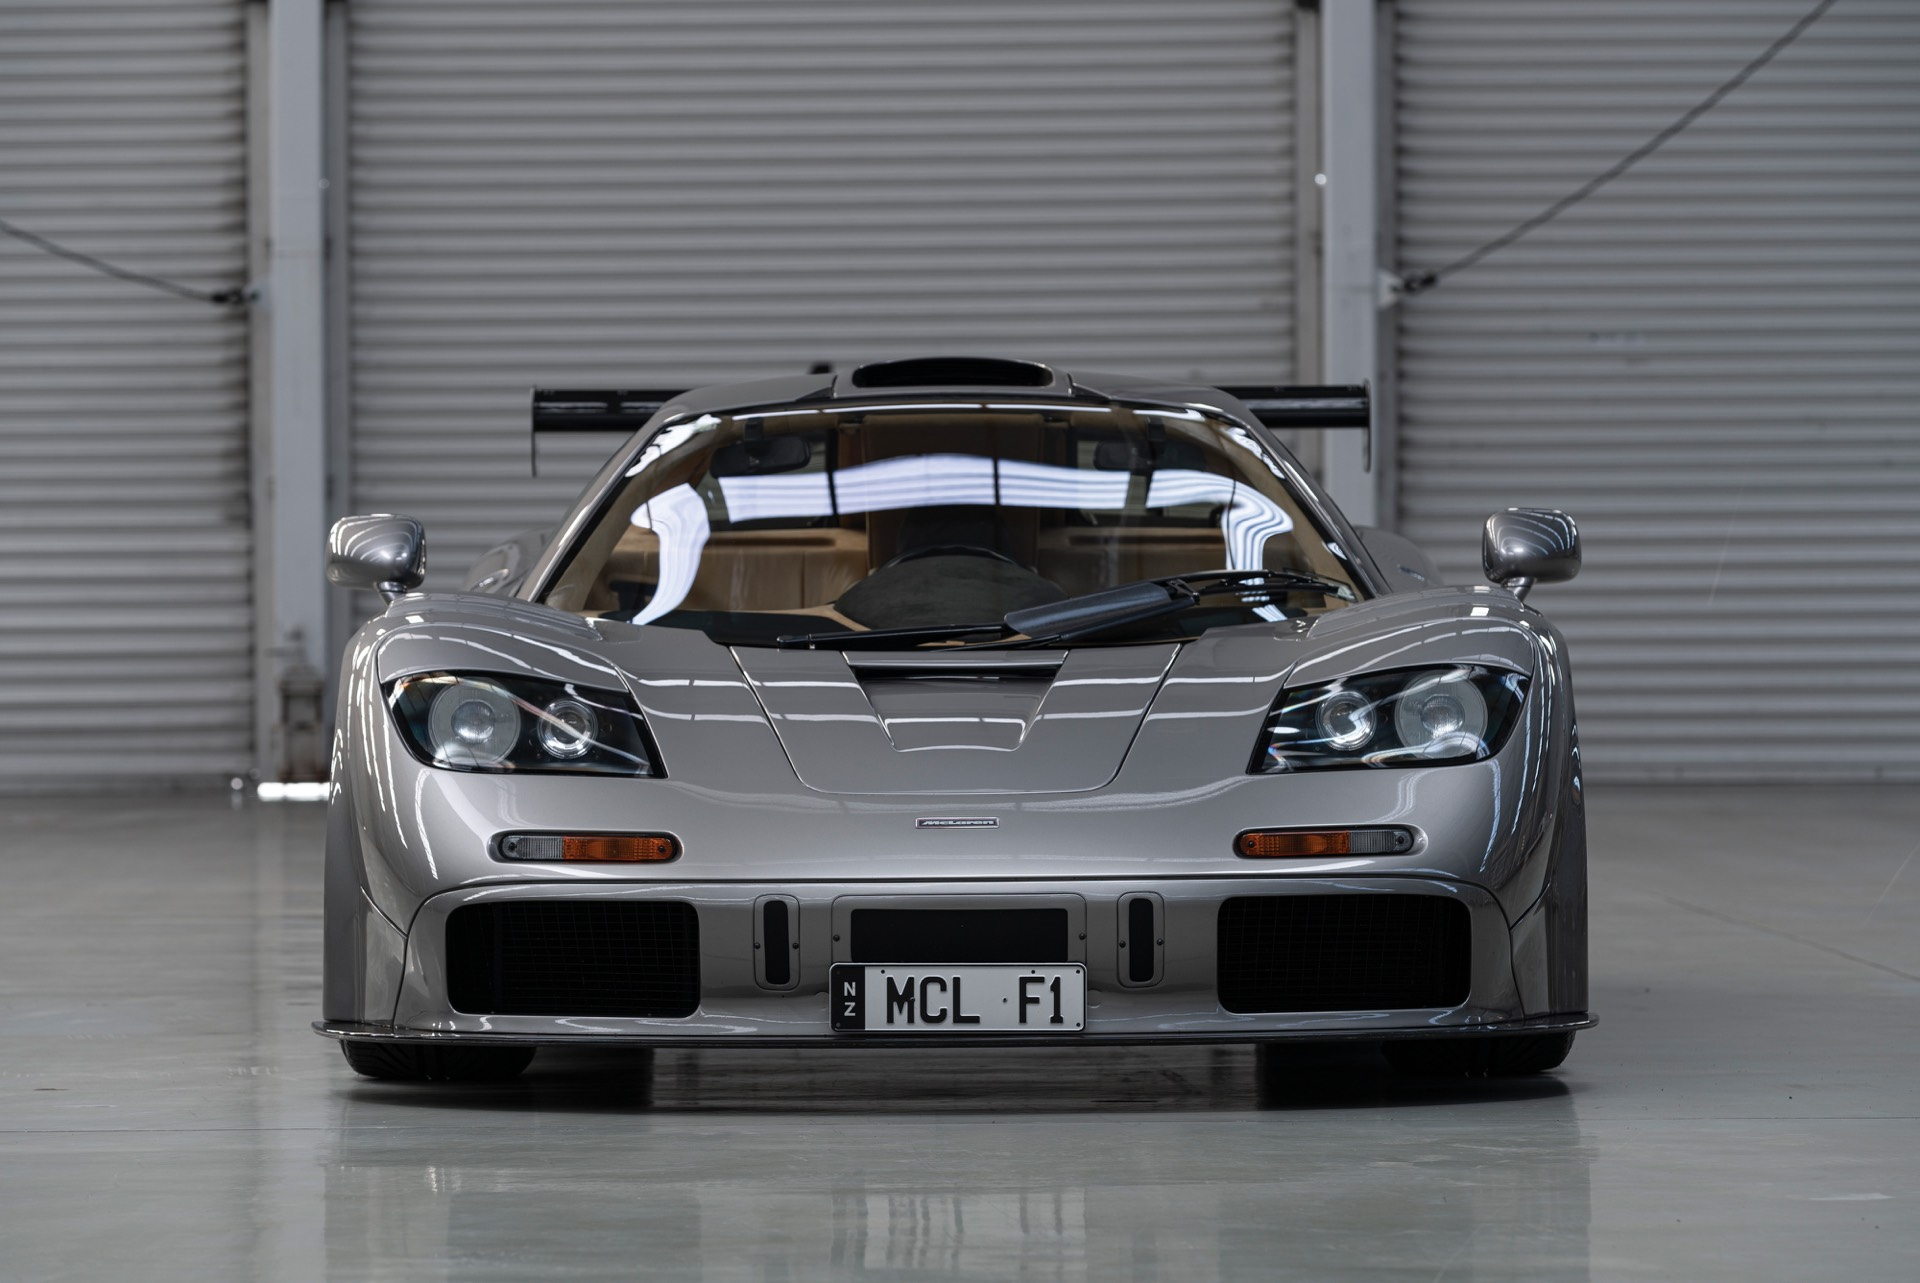 McLaren F1 LM Specification Sells for $19,805,000